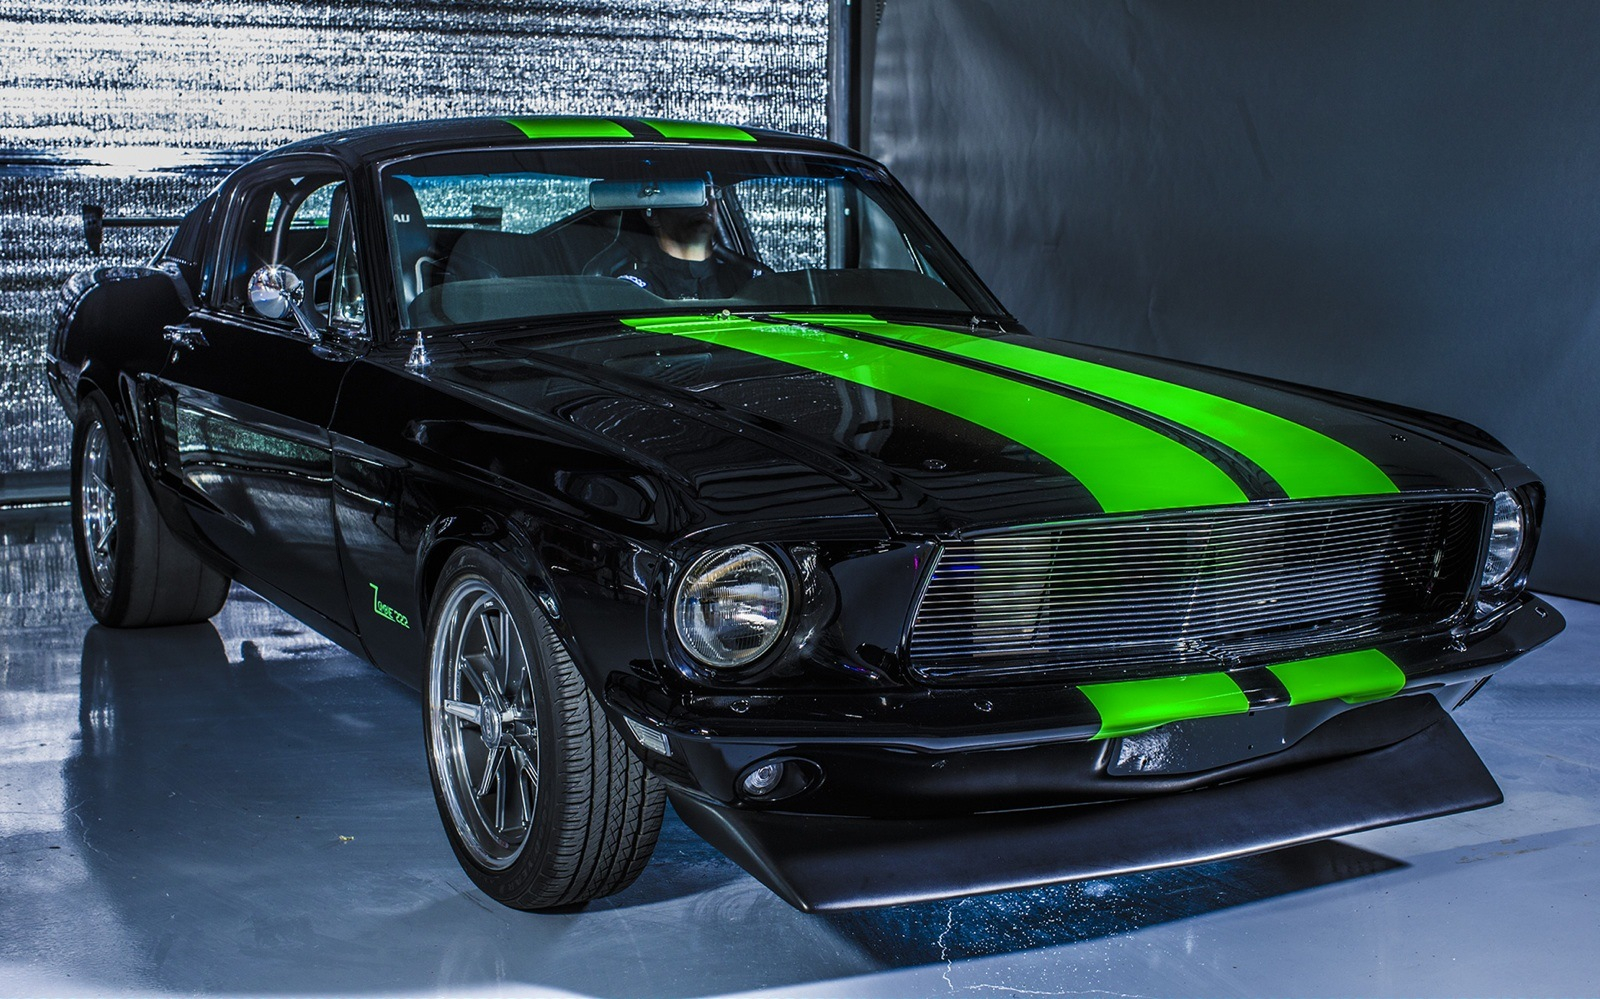 Vintage Electric Mustang bleeds torque and hits 174 mph  Coolfords